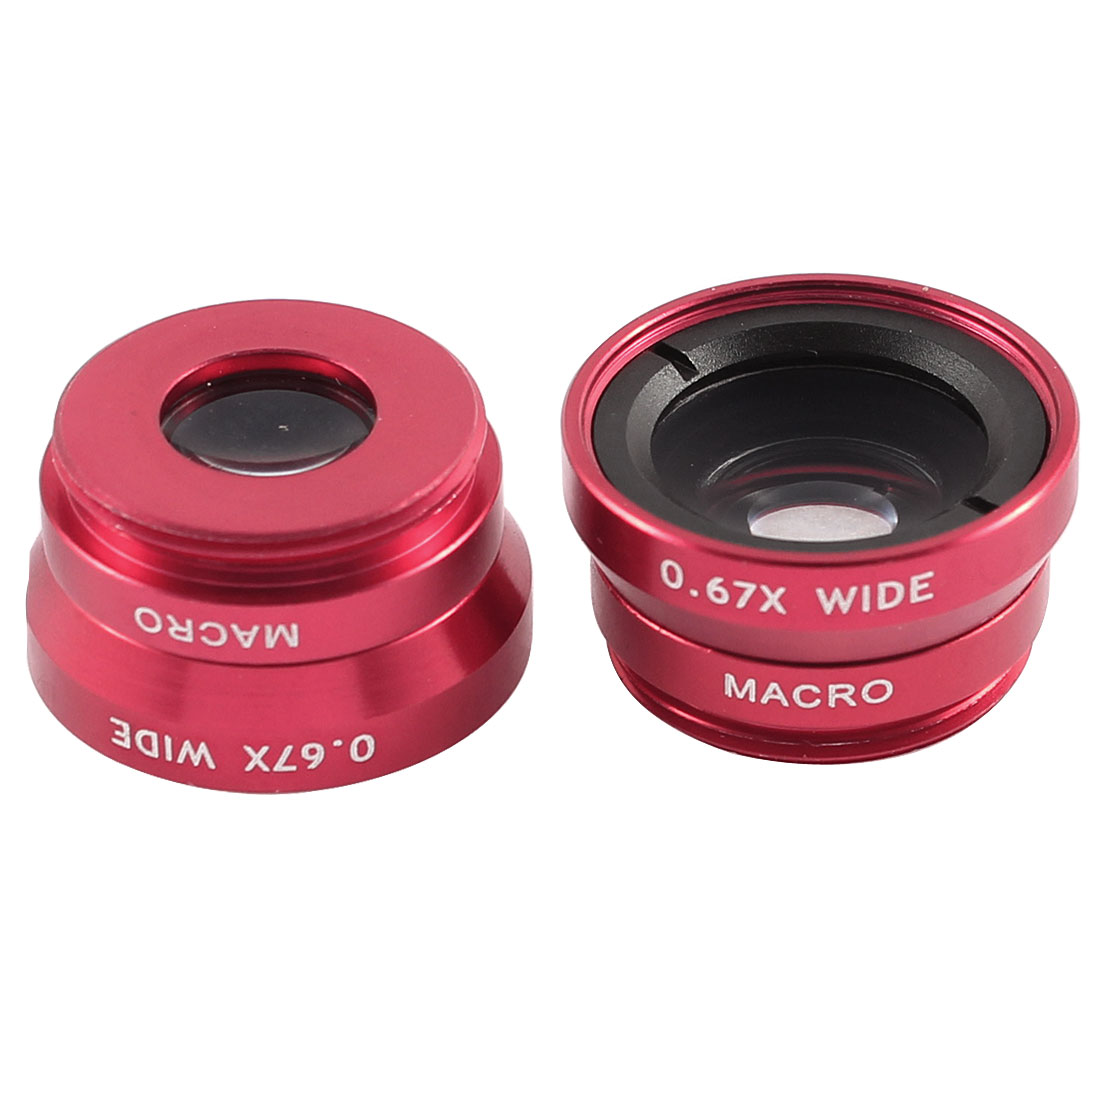 2 Pcs Red Fish Eye 0.67 Wide Angle Camera Macro Lens for Mobile Phone